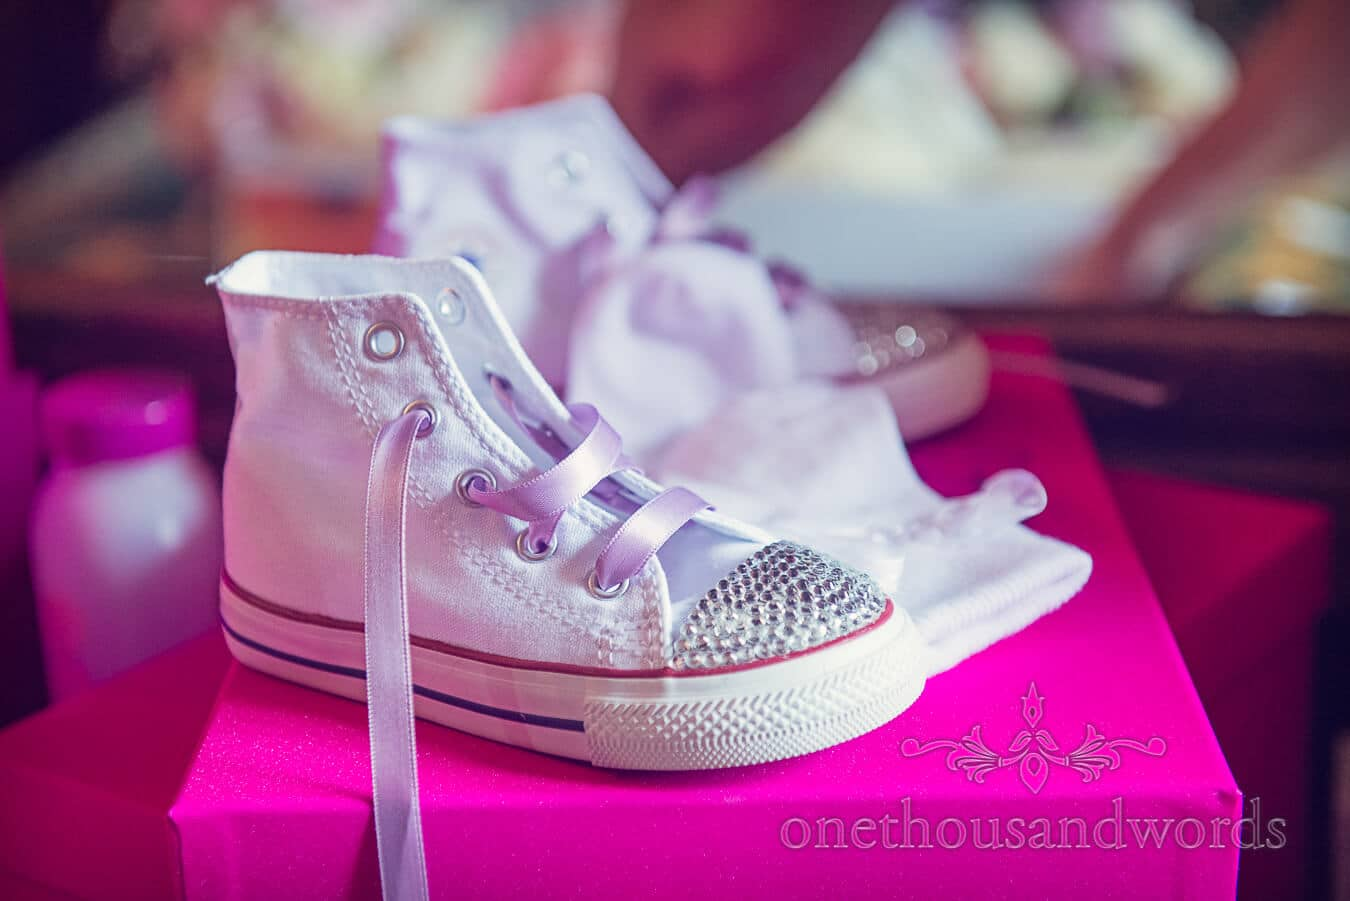 Tiny converse wedding boots with diamante toes for flower girl